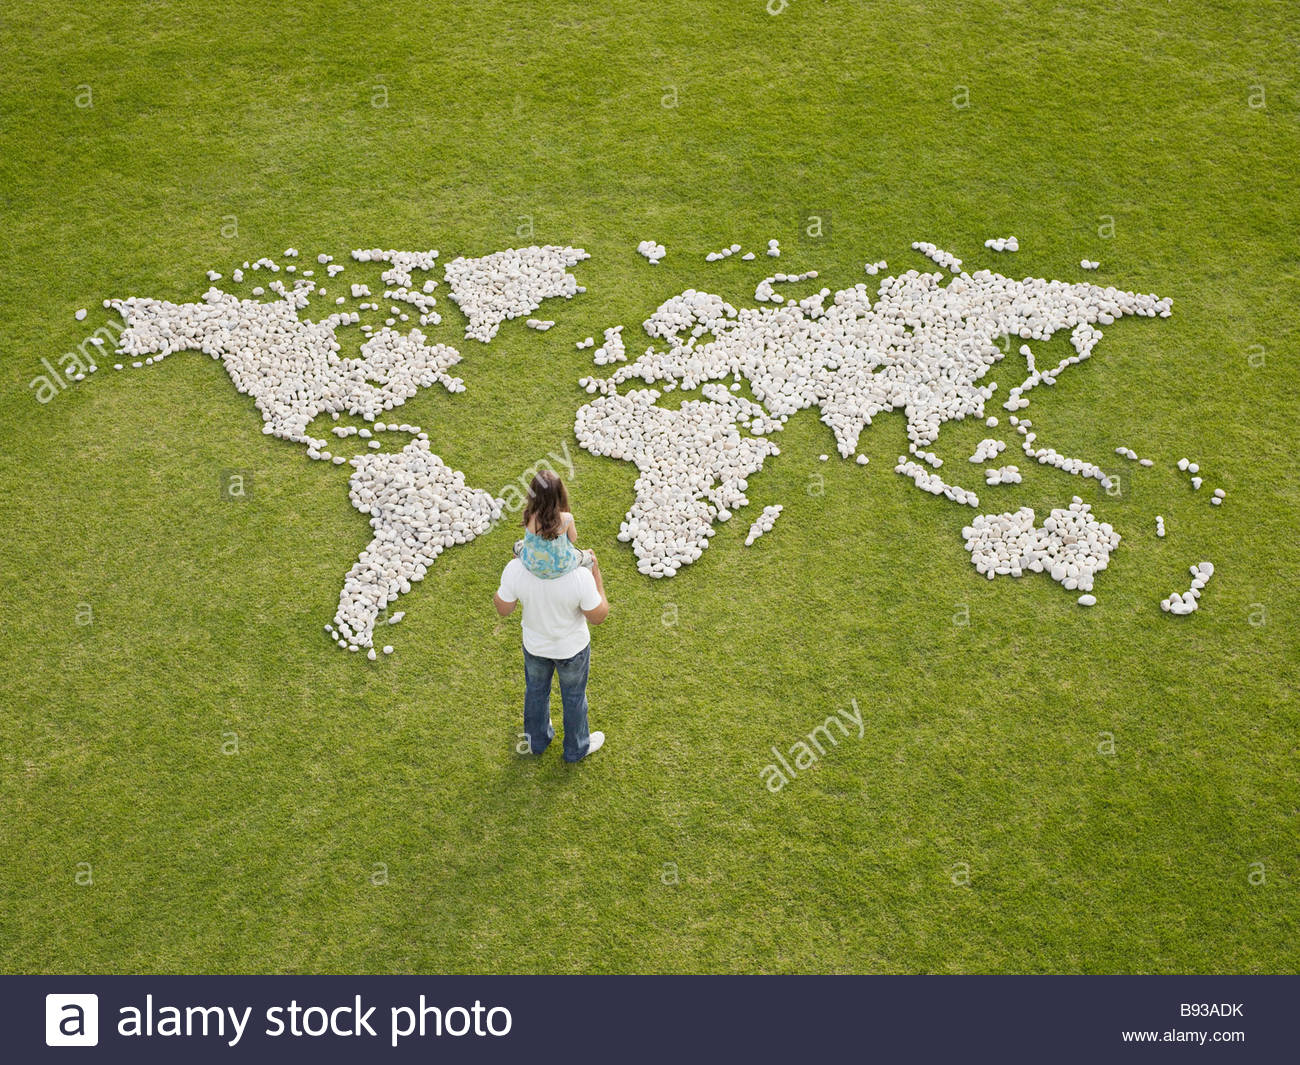 Father and daughter looking at world map made of rocks - Stock Image